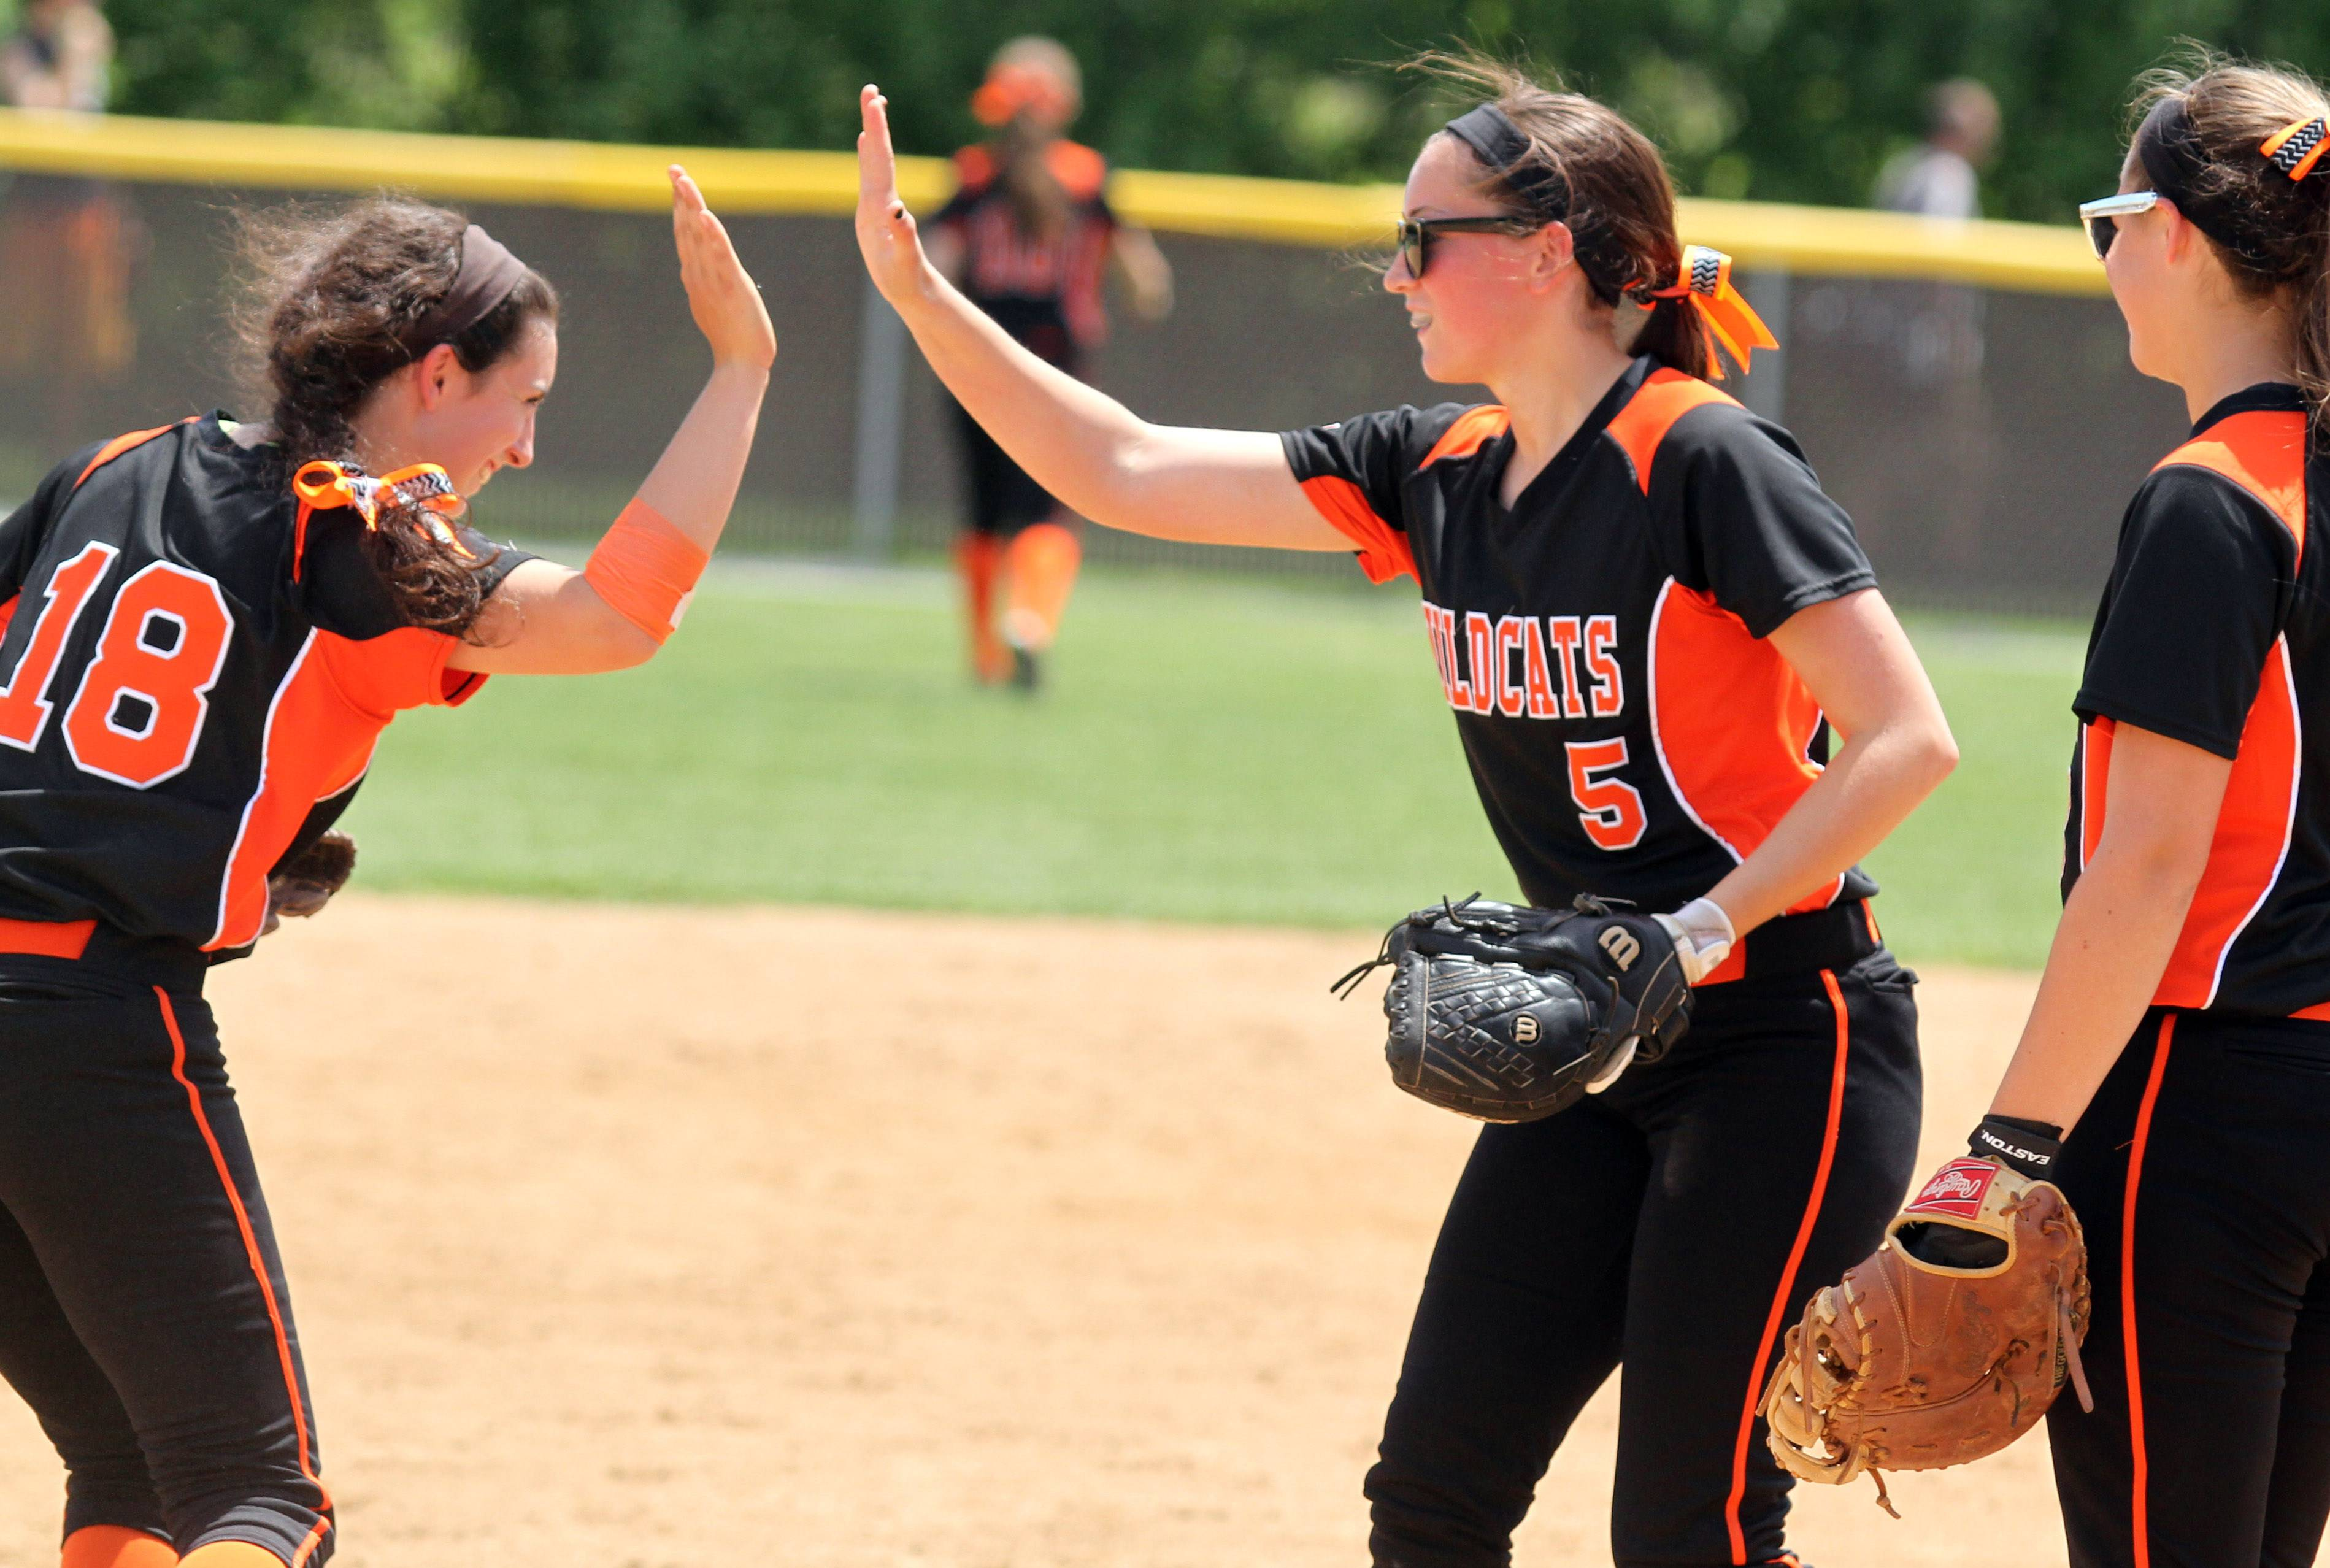 Libertyville pitcher Haley Alban, right, gets a hand from third baseman Jamie Stevens after facing Carmel.